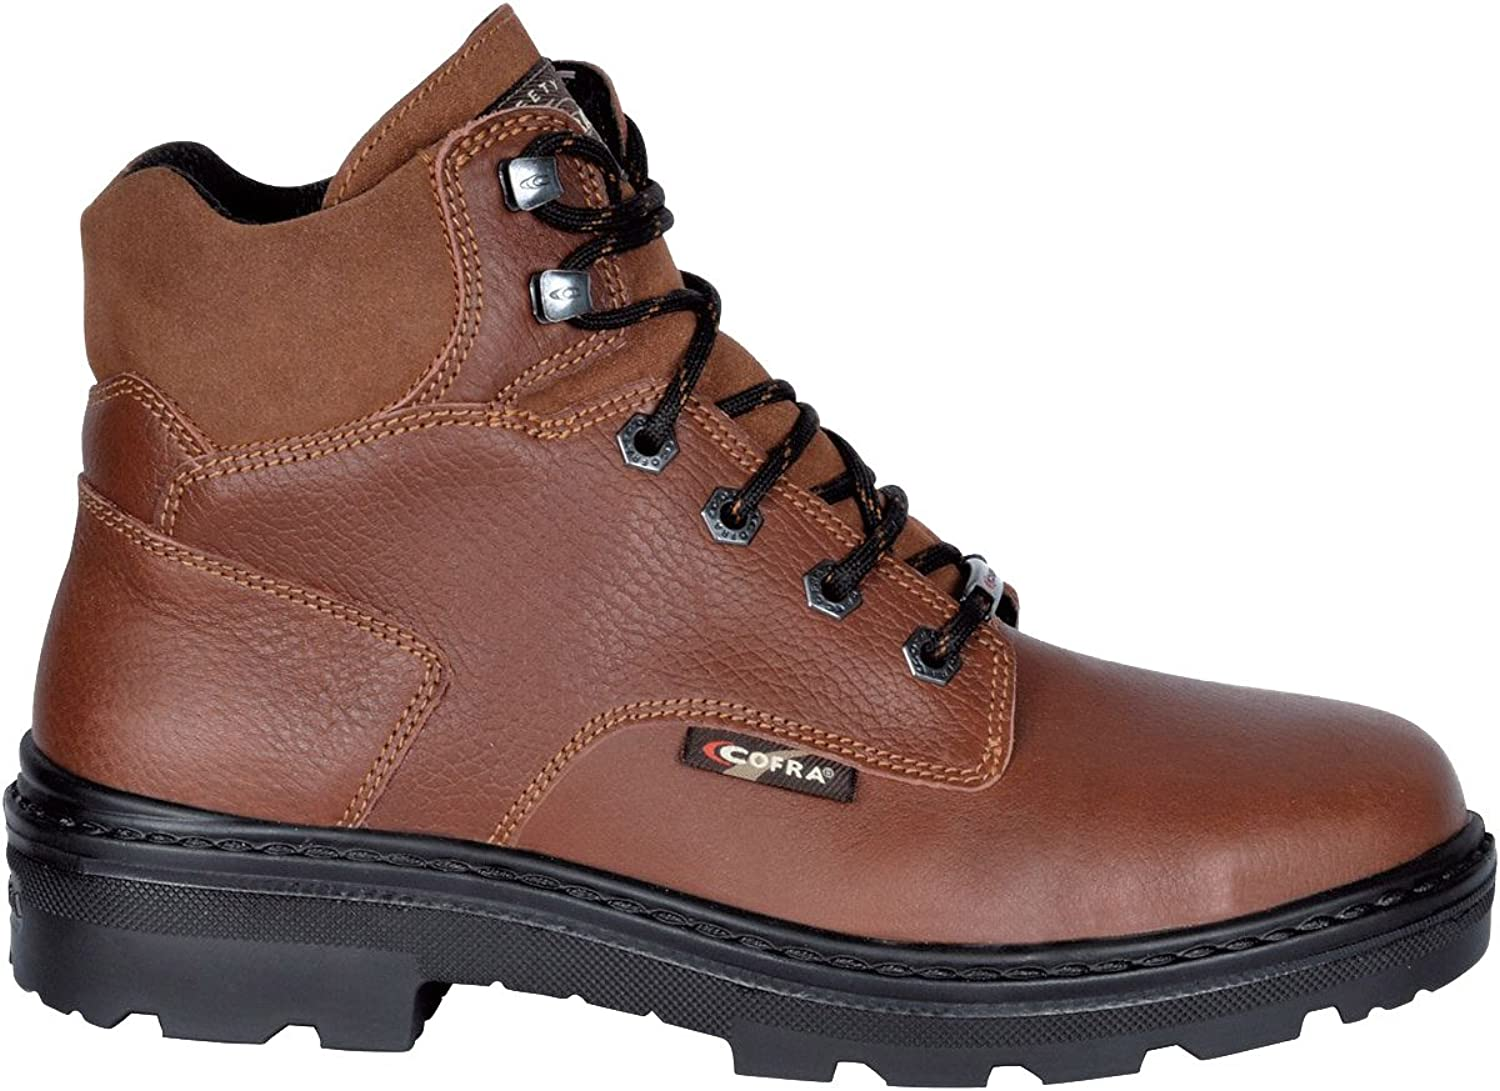 Cofra 25670-002.W44 Size 44 Erie Bis  S3 SRC Safety shoes - Brown